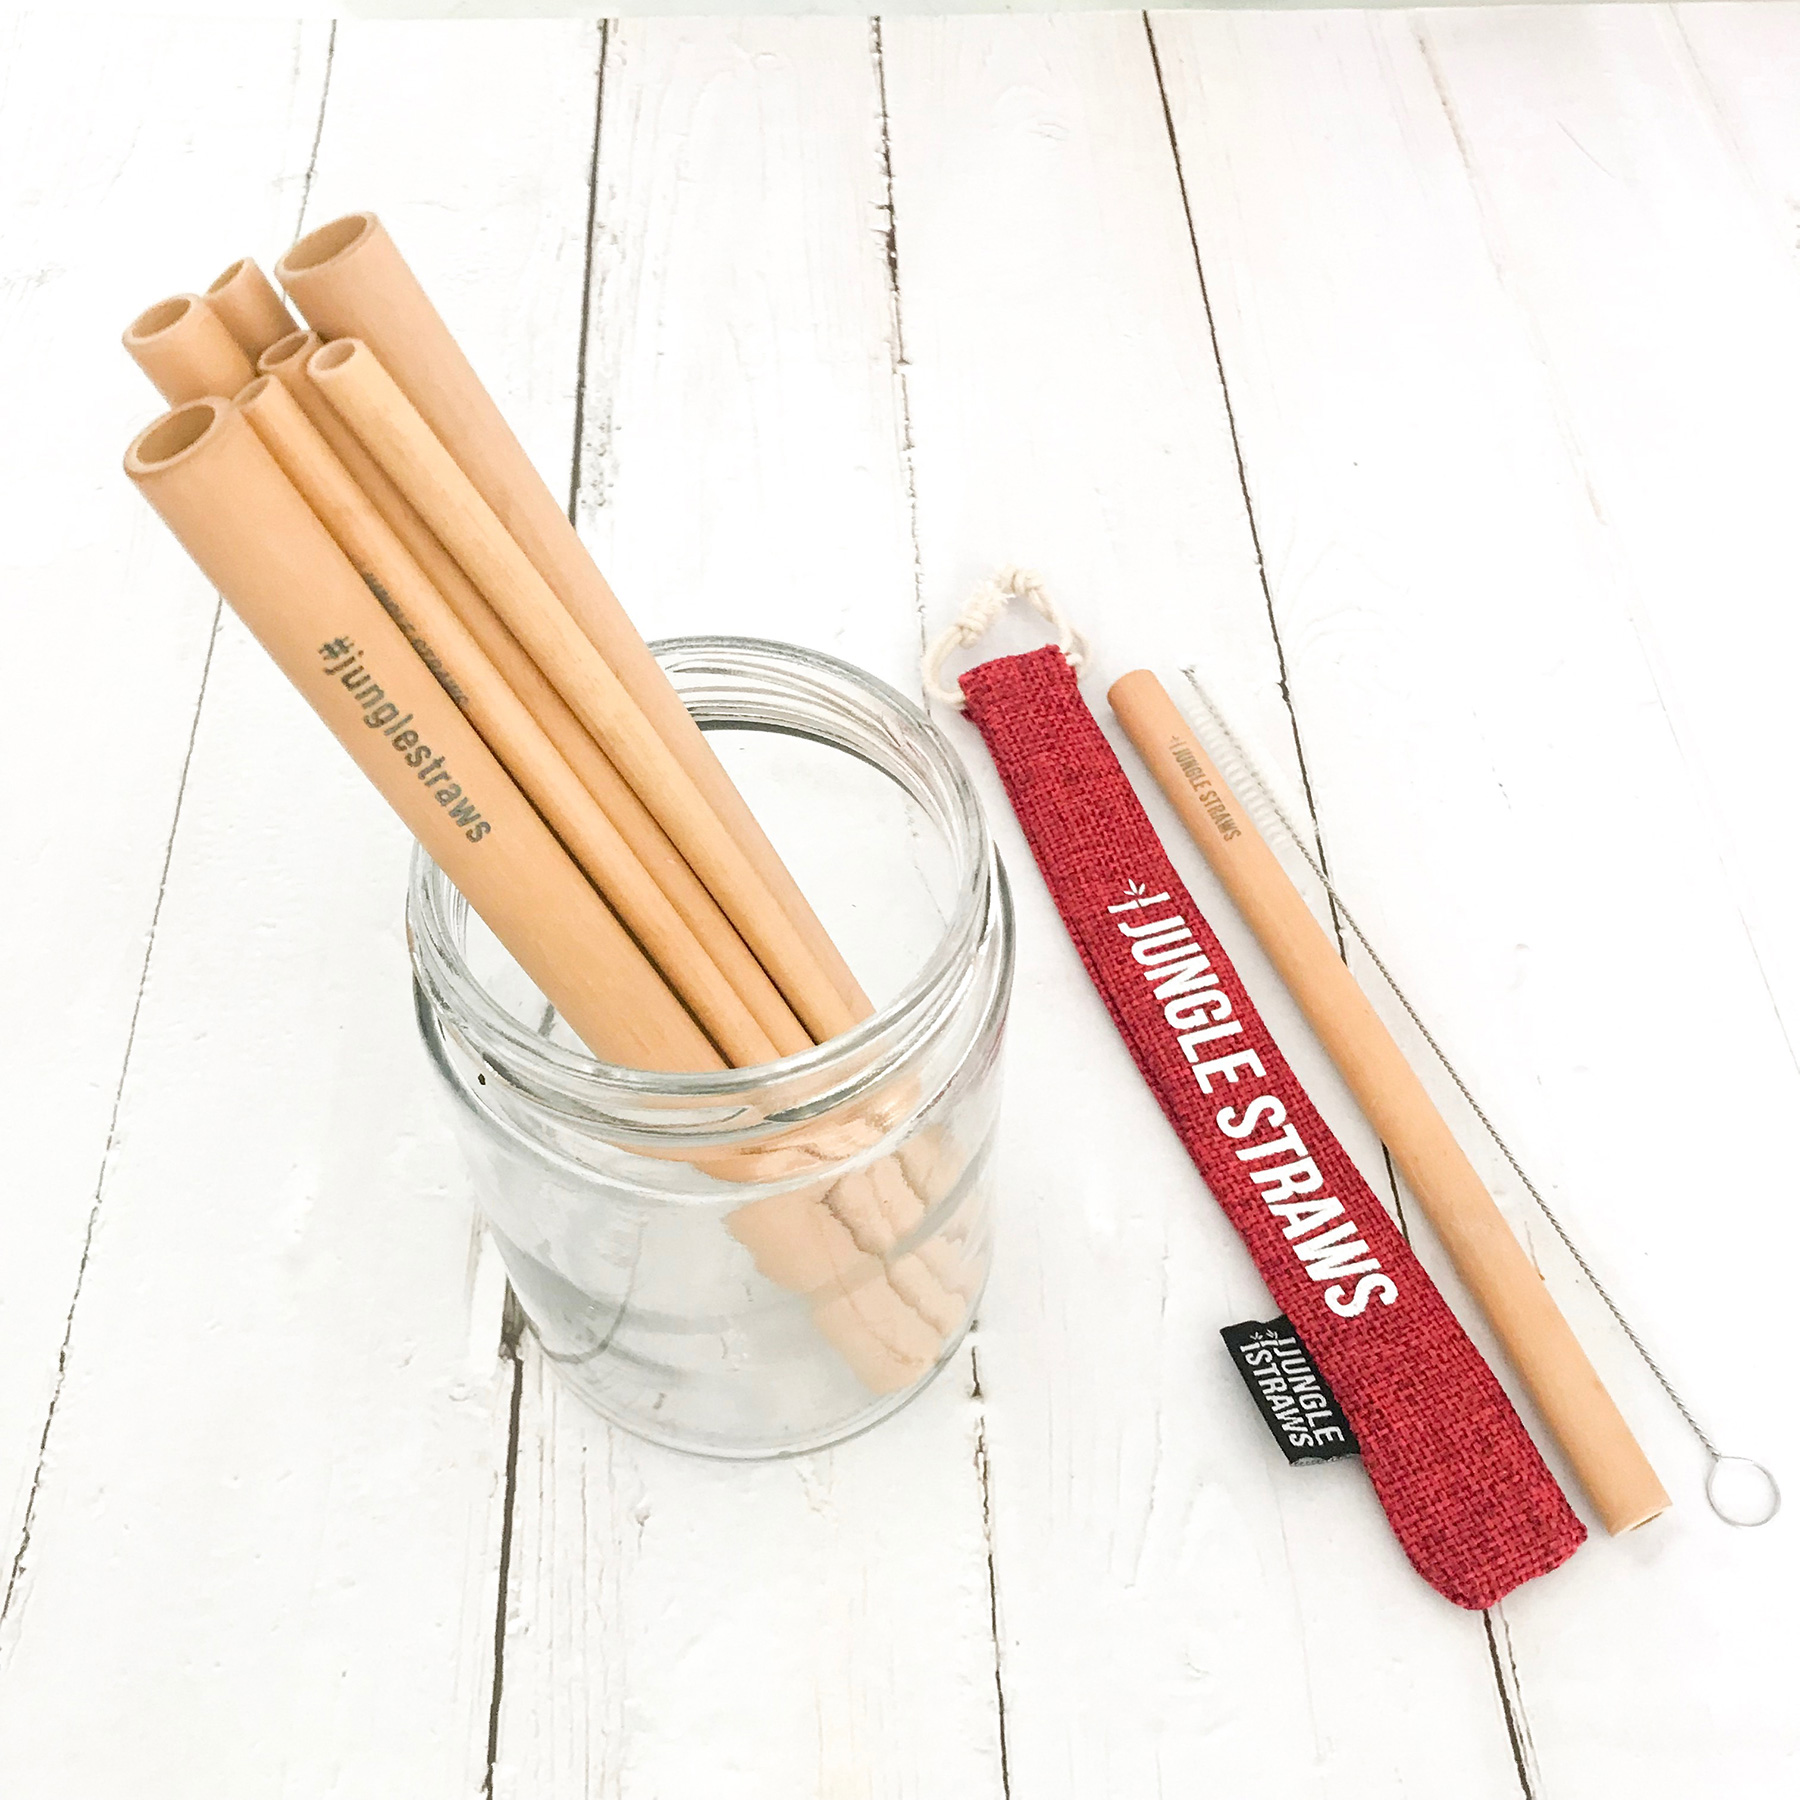 LOW-Jungle-Straws-Red-Berry-Lifestyle-Shot-Bamboo-Straw-Sleeve.jpg